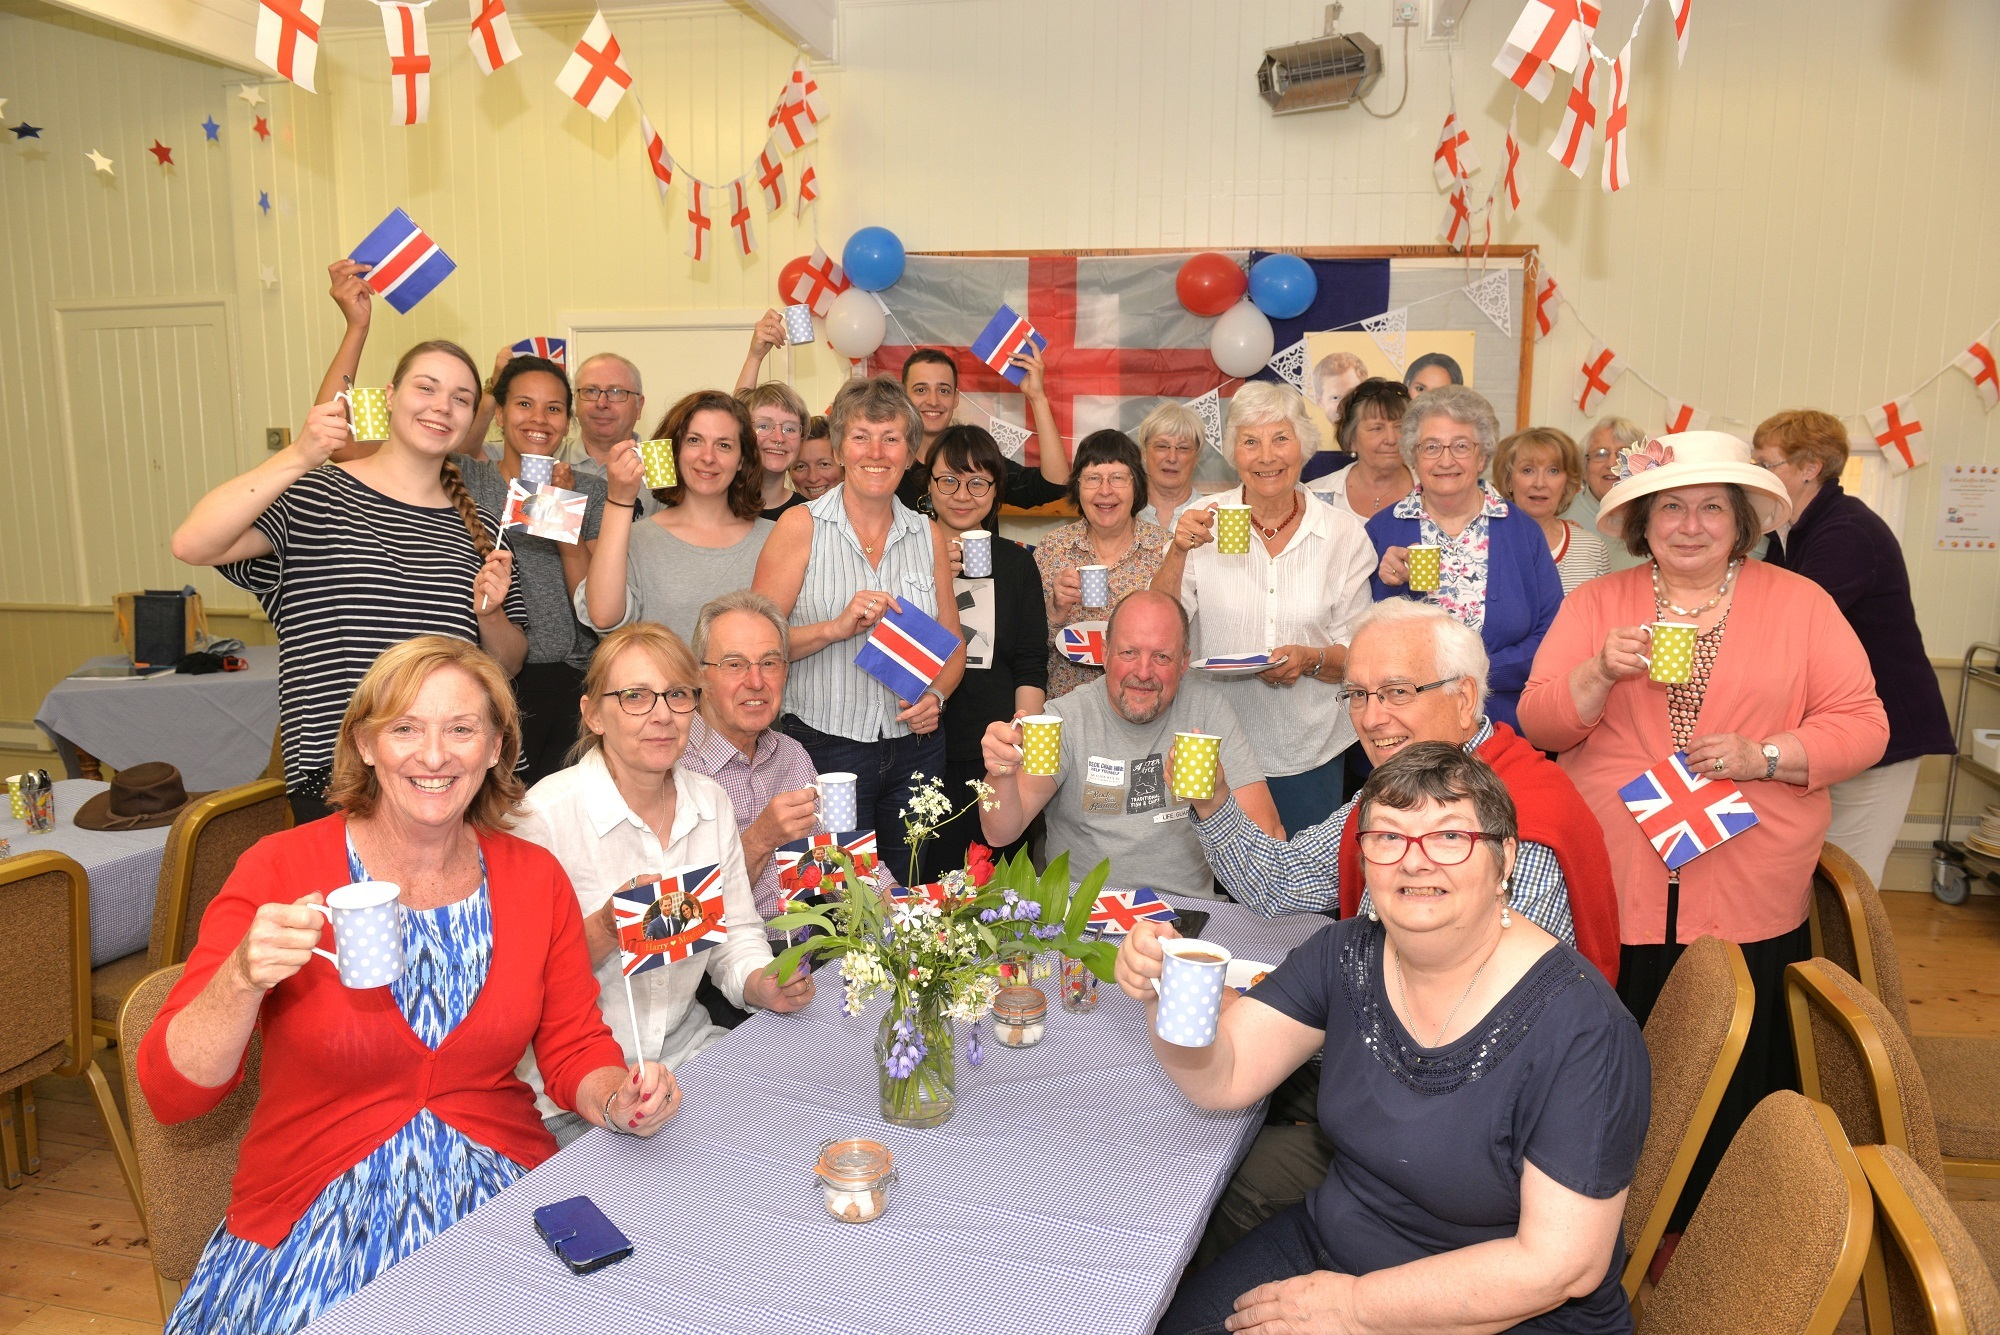 Residents of Coates, visitors and Coates Kitchen volunteers raise a toast during their Royal Wedding Coffee morning at Coates Village Hall